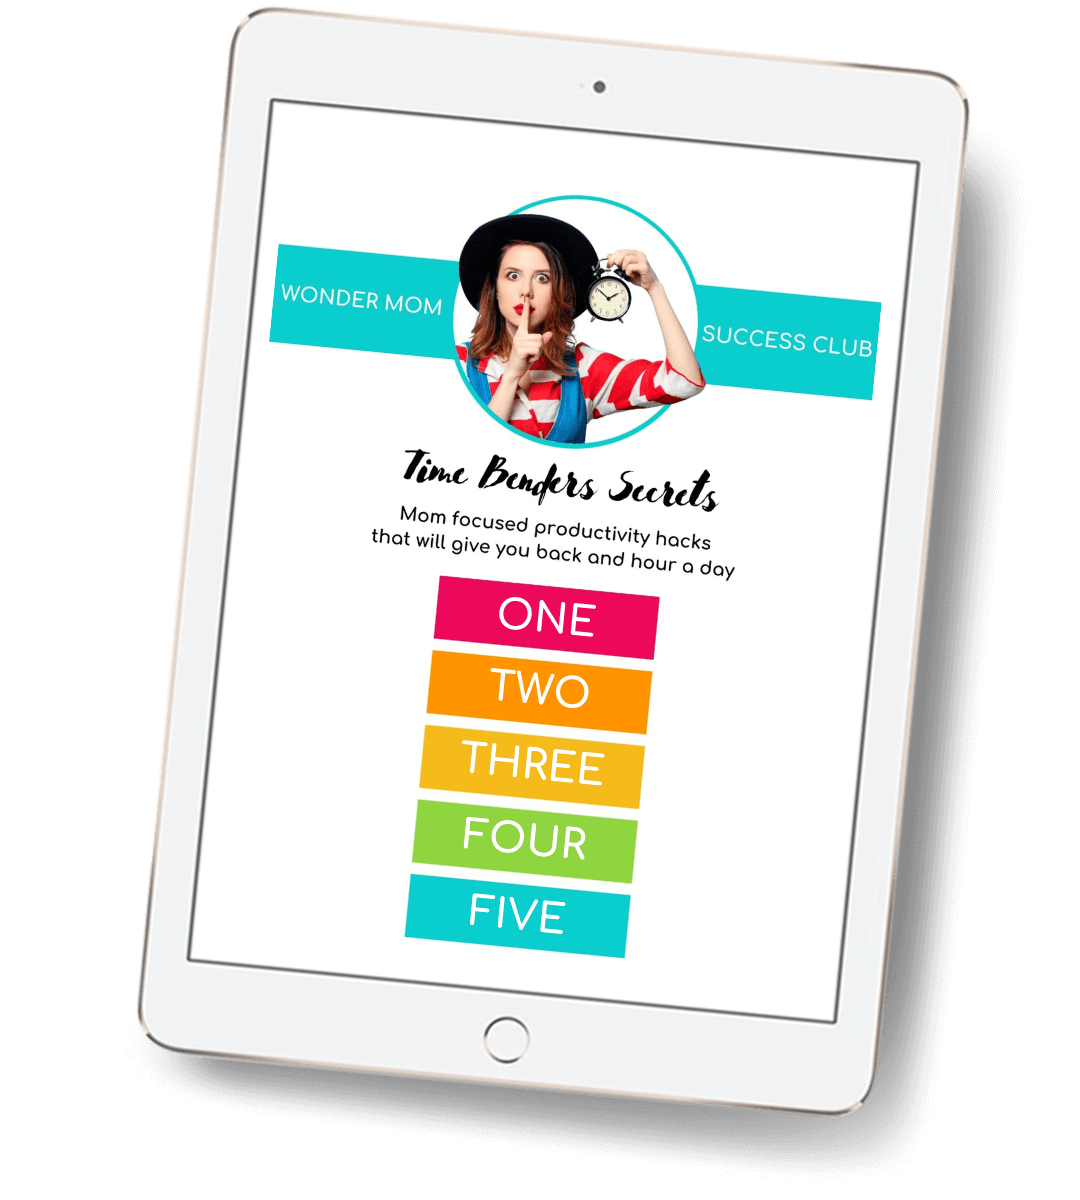 Time saving resource from Accountability coach